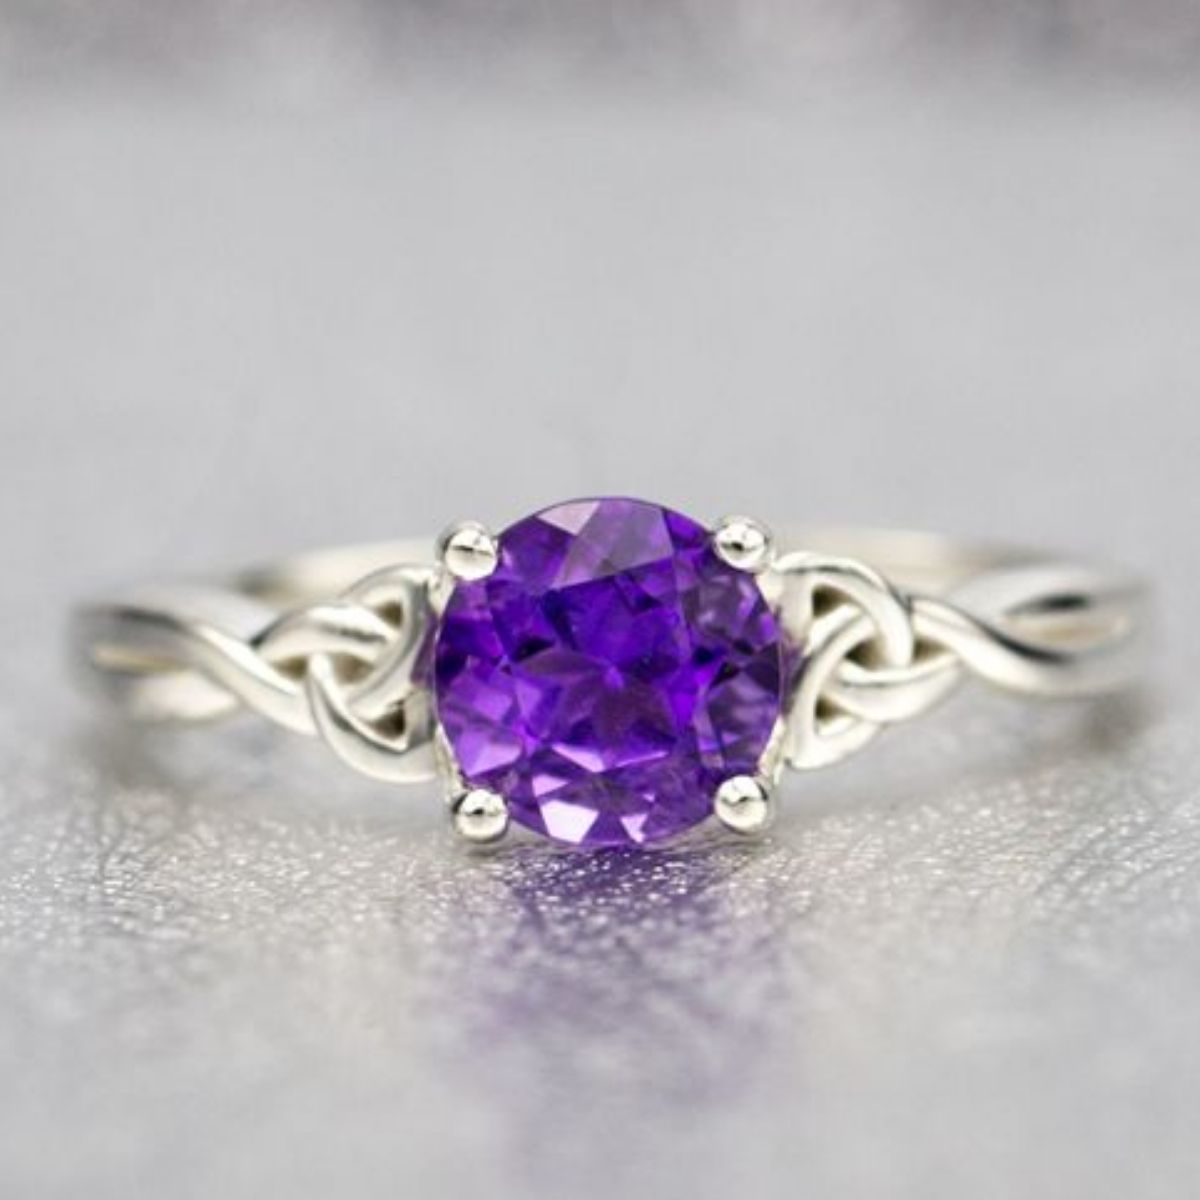 ideas cheap valentines wedding stone diamond best day social purple gift ring com heavy rings jewelry engagement gifts